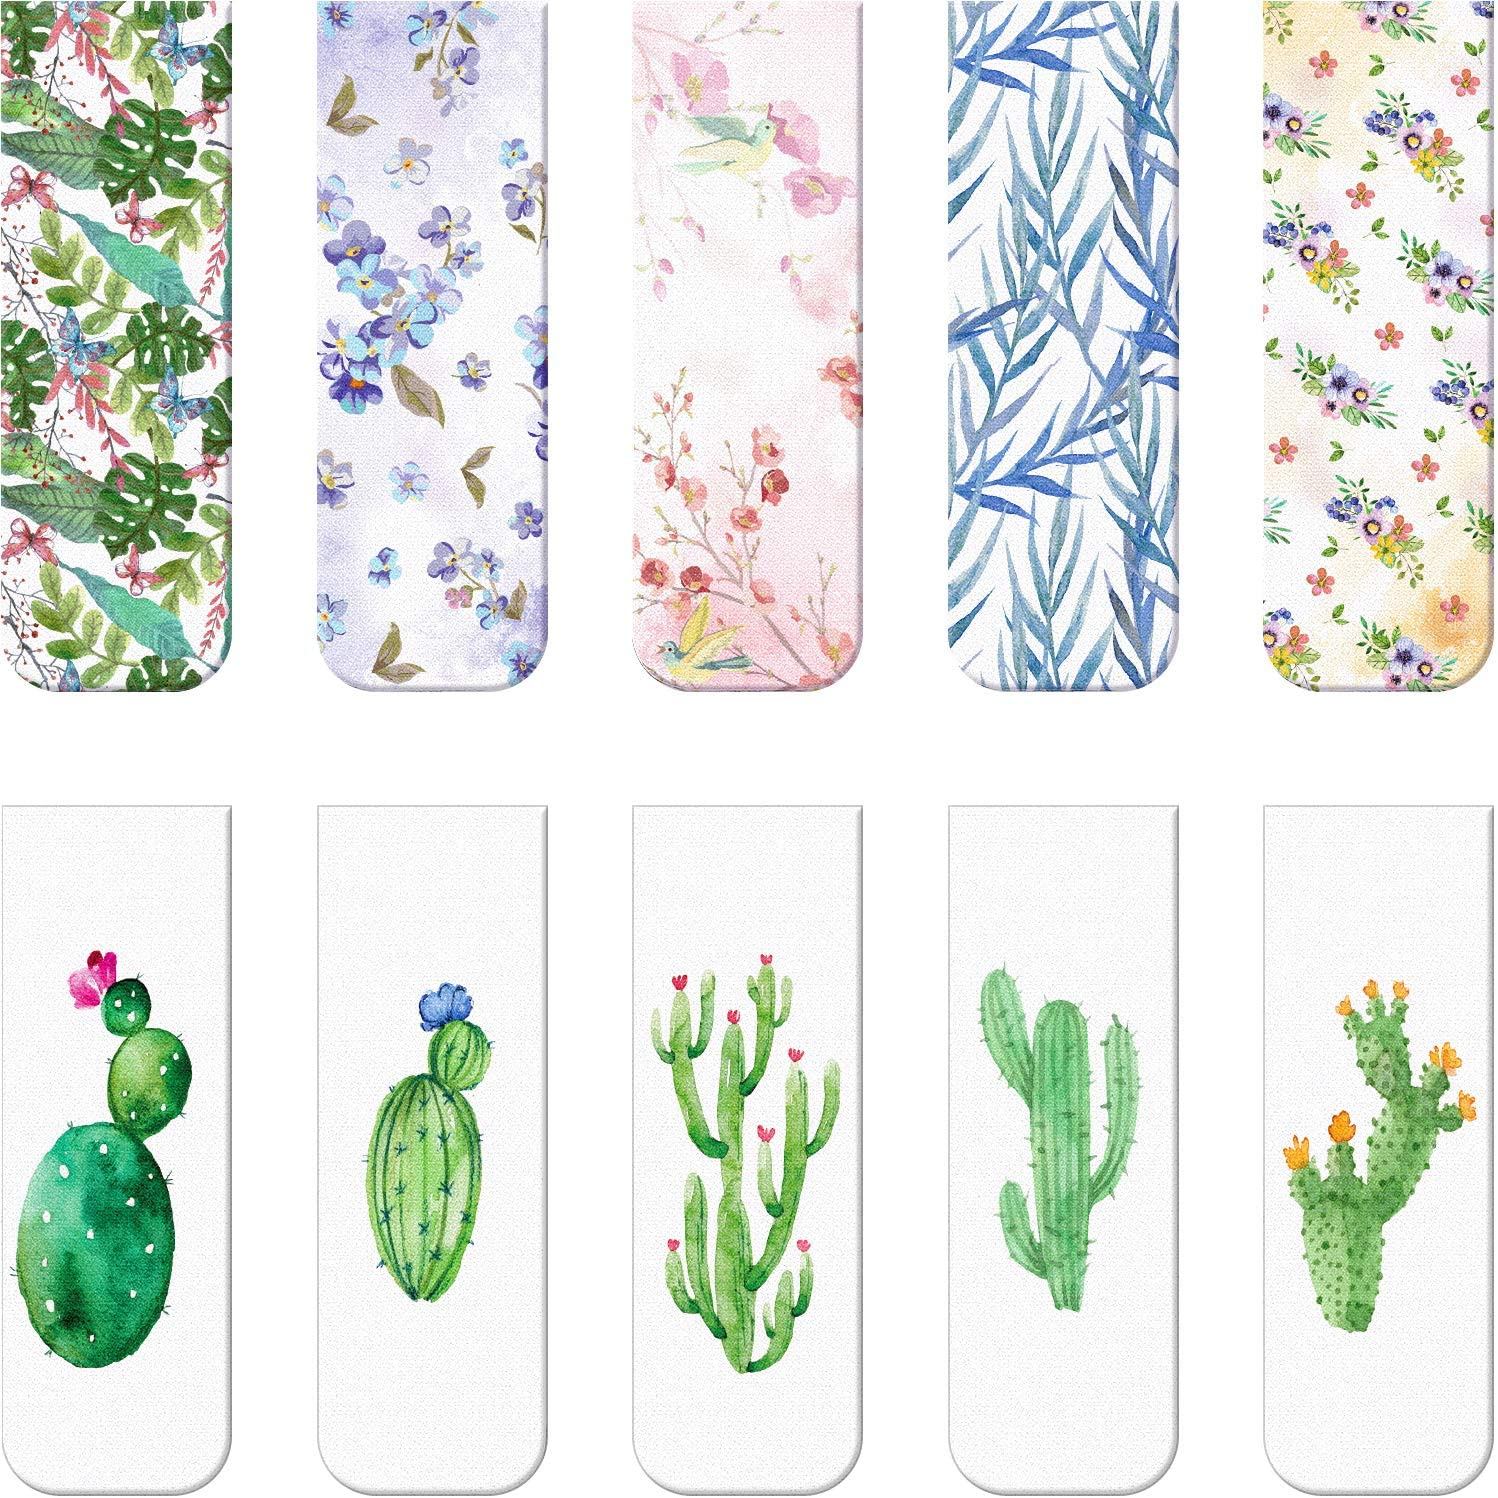 10 Pieces Magnetic Bookmarks Magnet M Book Assorted Max Ultra-Cheap Deals 68% OFF Page Markers